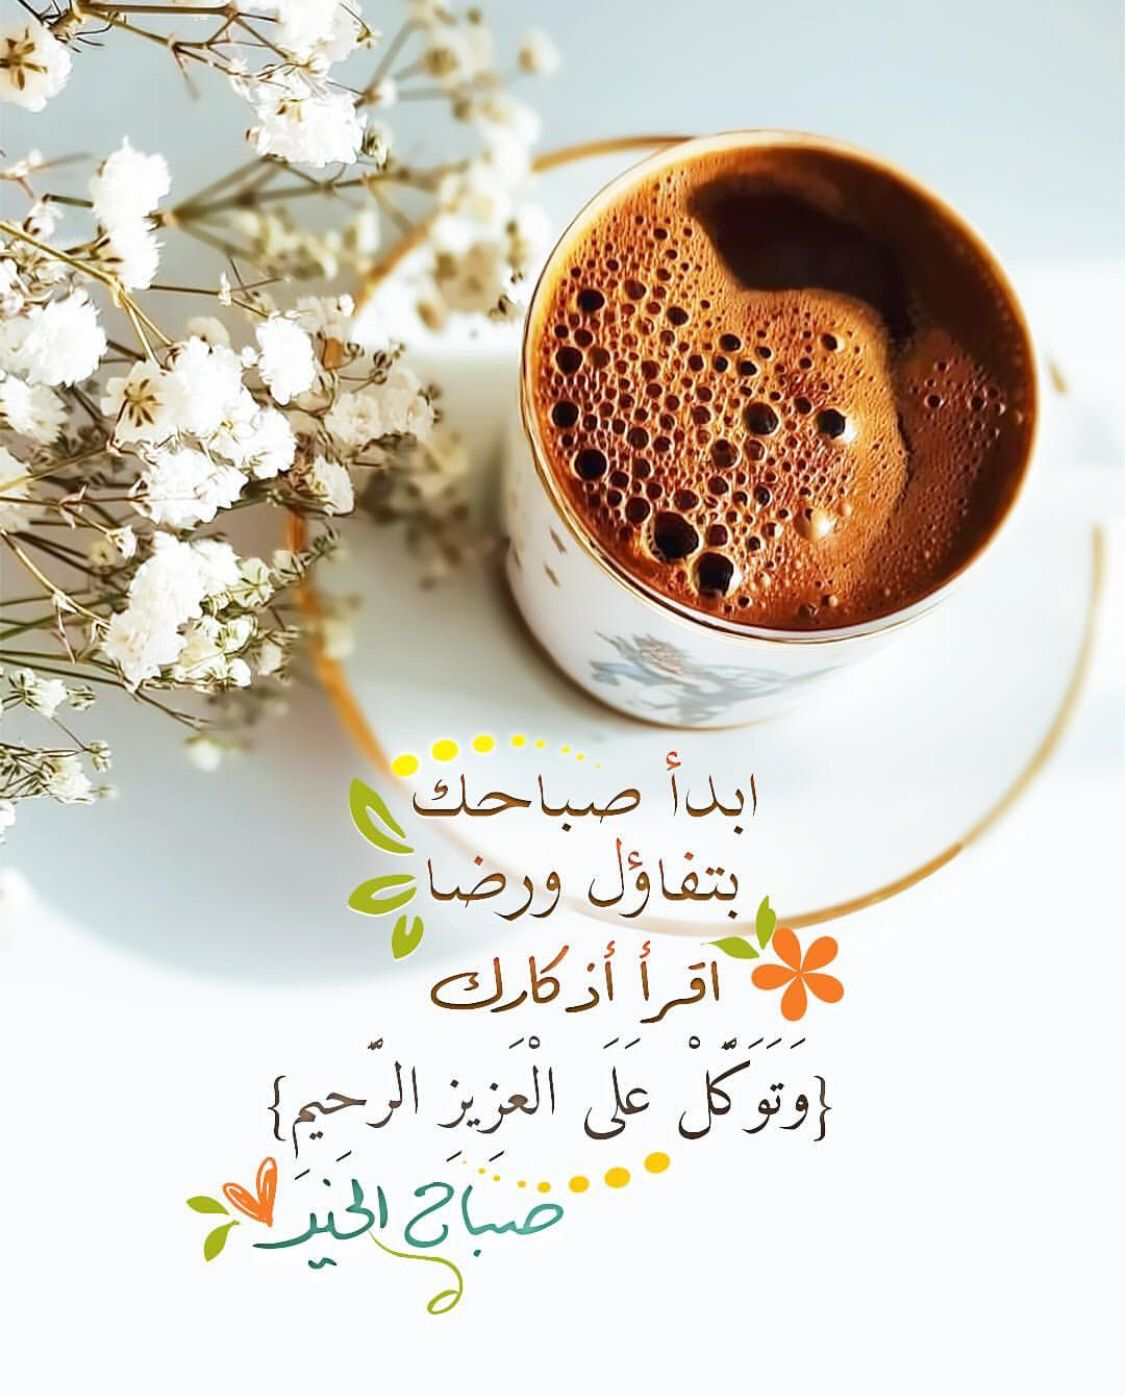 Pin By راجــي عفو ربــي On صباح الخير Good Morning Beautiful Morning Messages Good Morning Arabic Good Morning Greetings